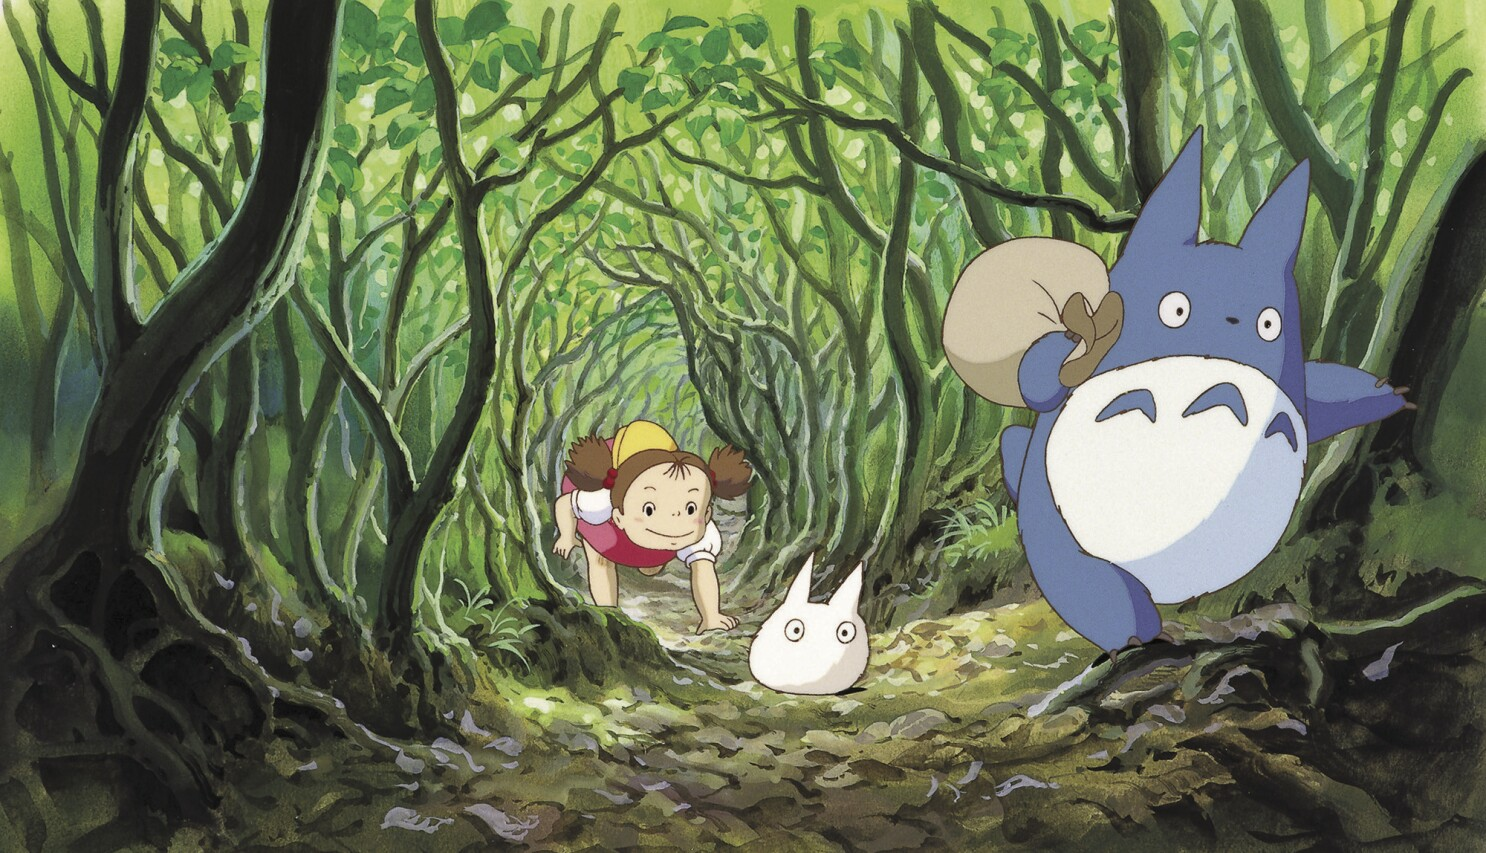 Works Of Studio Ghibli The Animation Team Behind Spirited Away Come To The Frida In Santa Ana Los Angeles Times